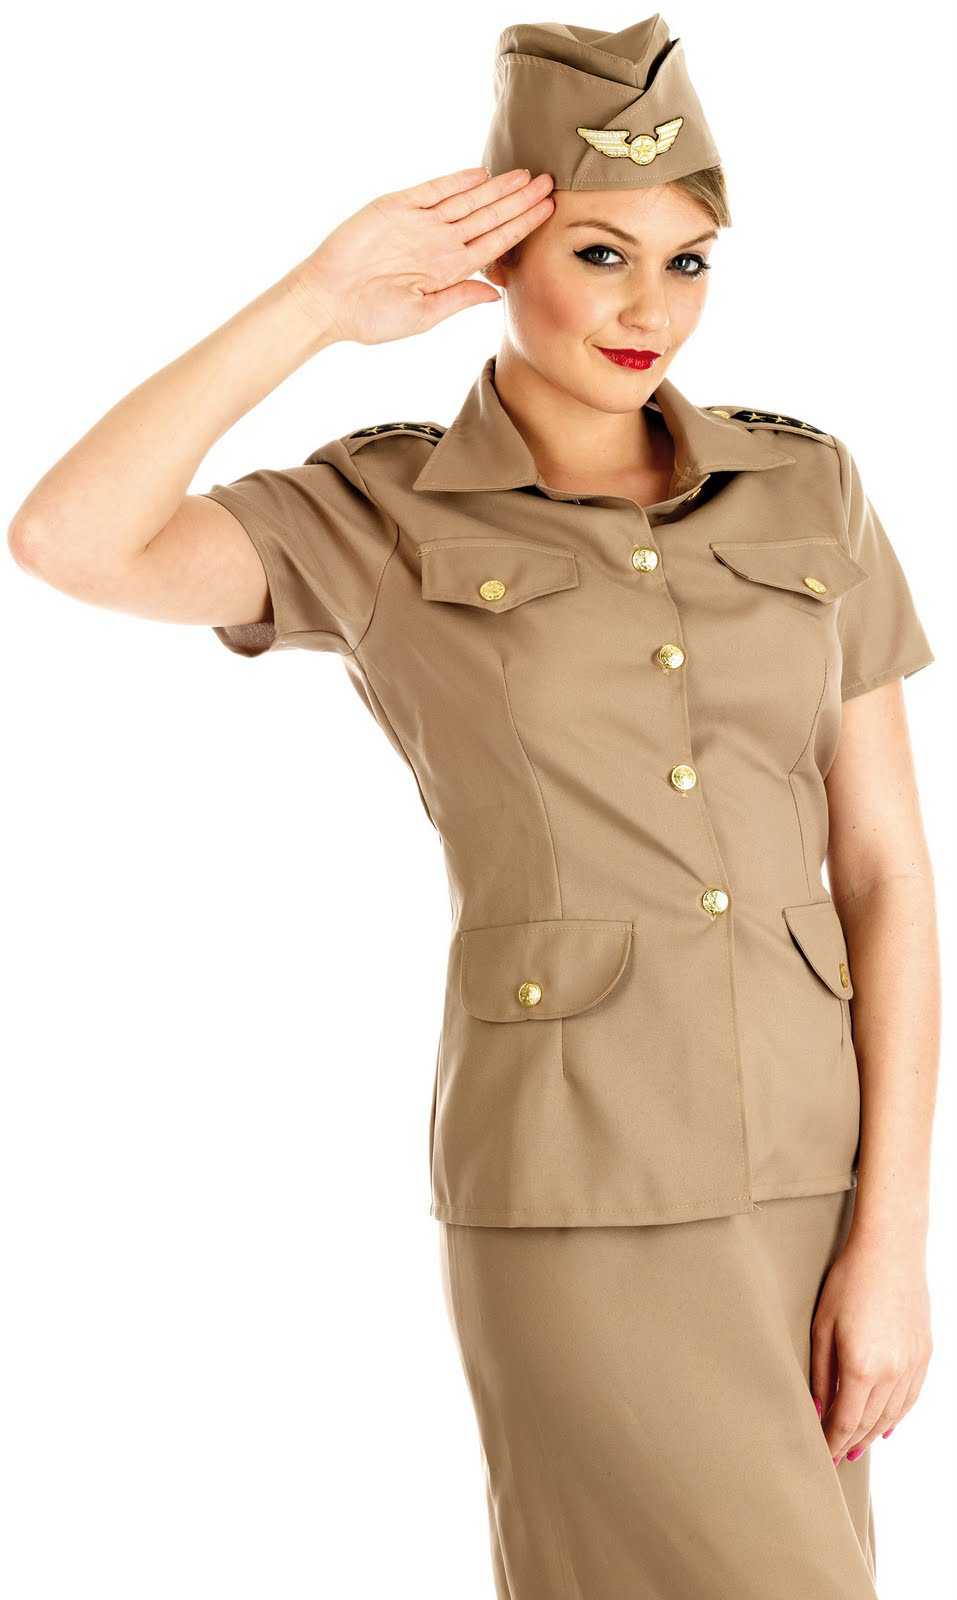 air hostess costume  sc 1 st  French Fashions - WordPress.com & air hostess costume | French Fashions